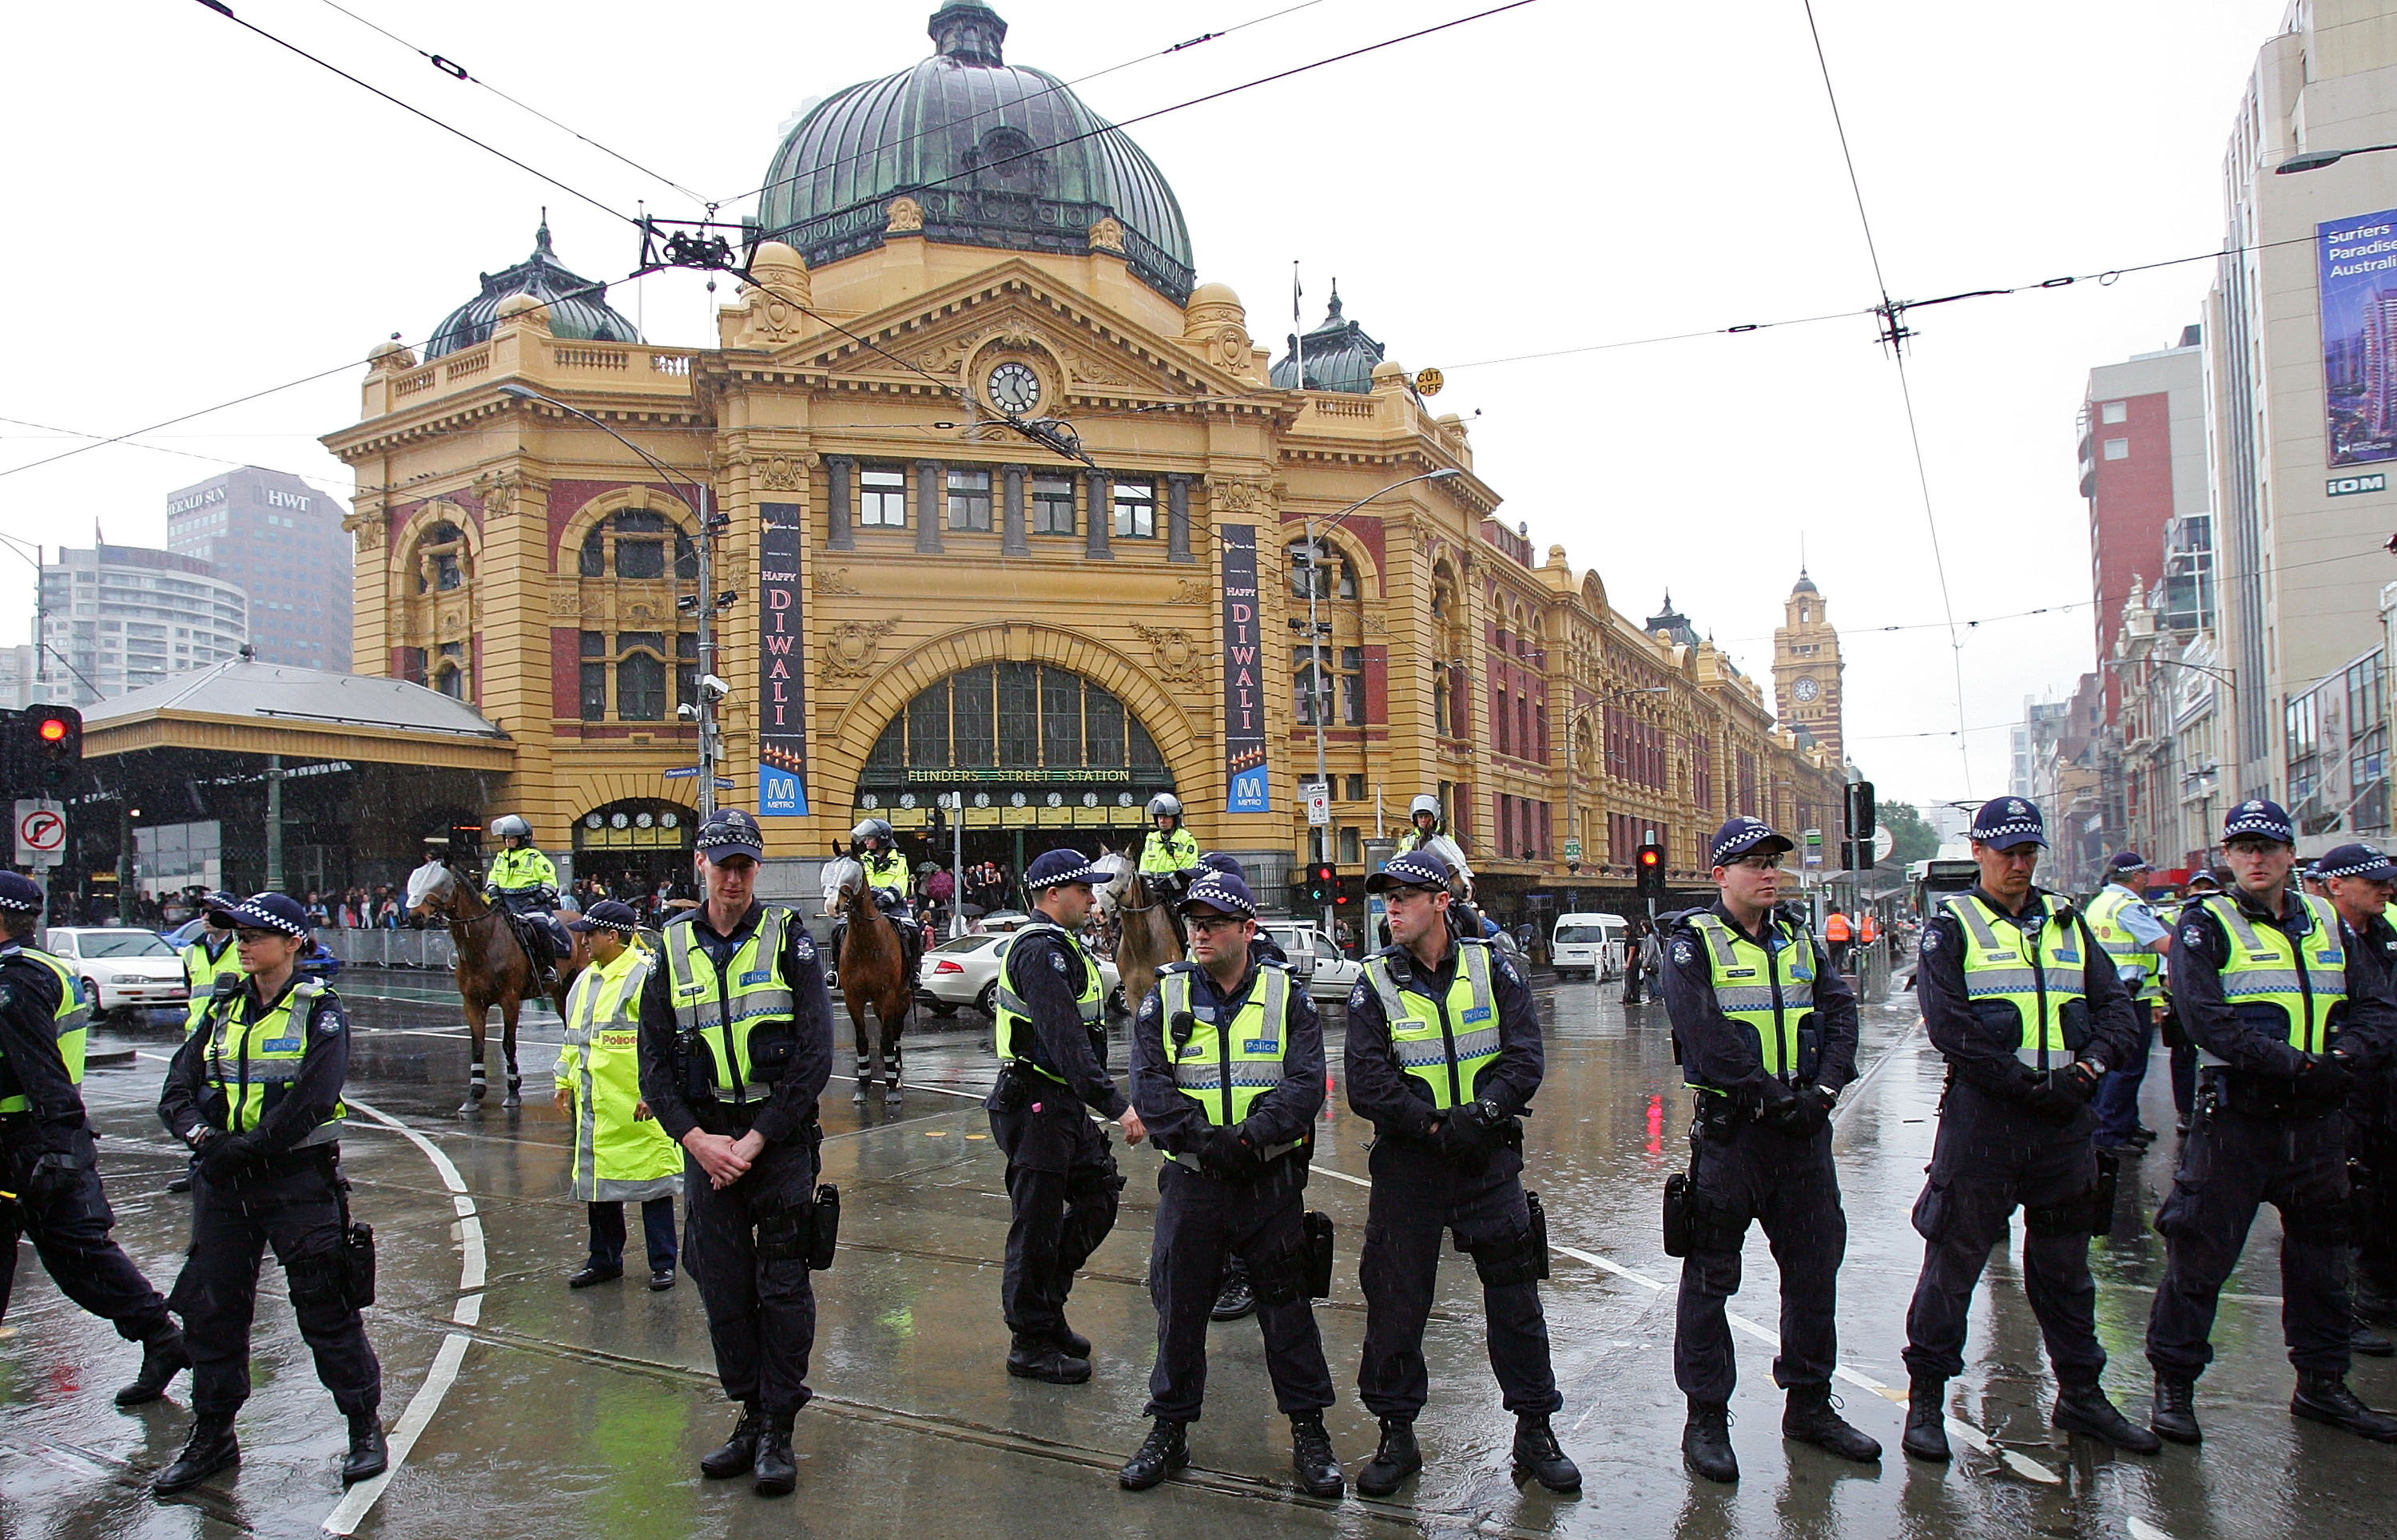 Melbourne's immigrant crime wave: Fact or fiction?